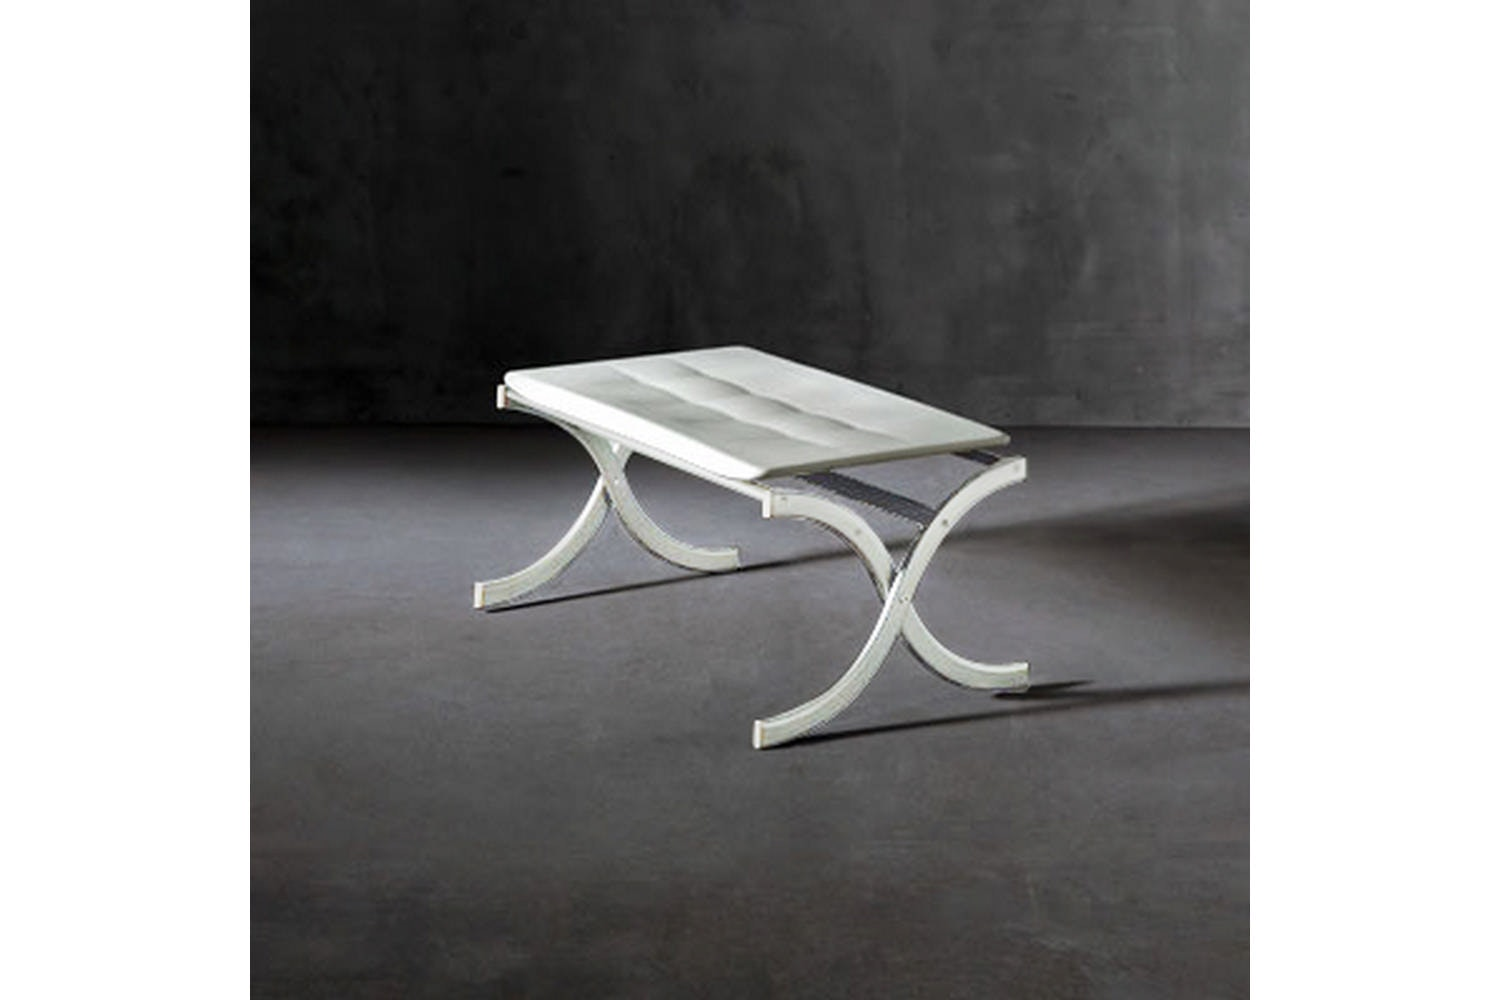 Barcelonina Bench by Deepdesign for Serralunga